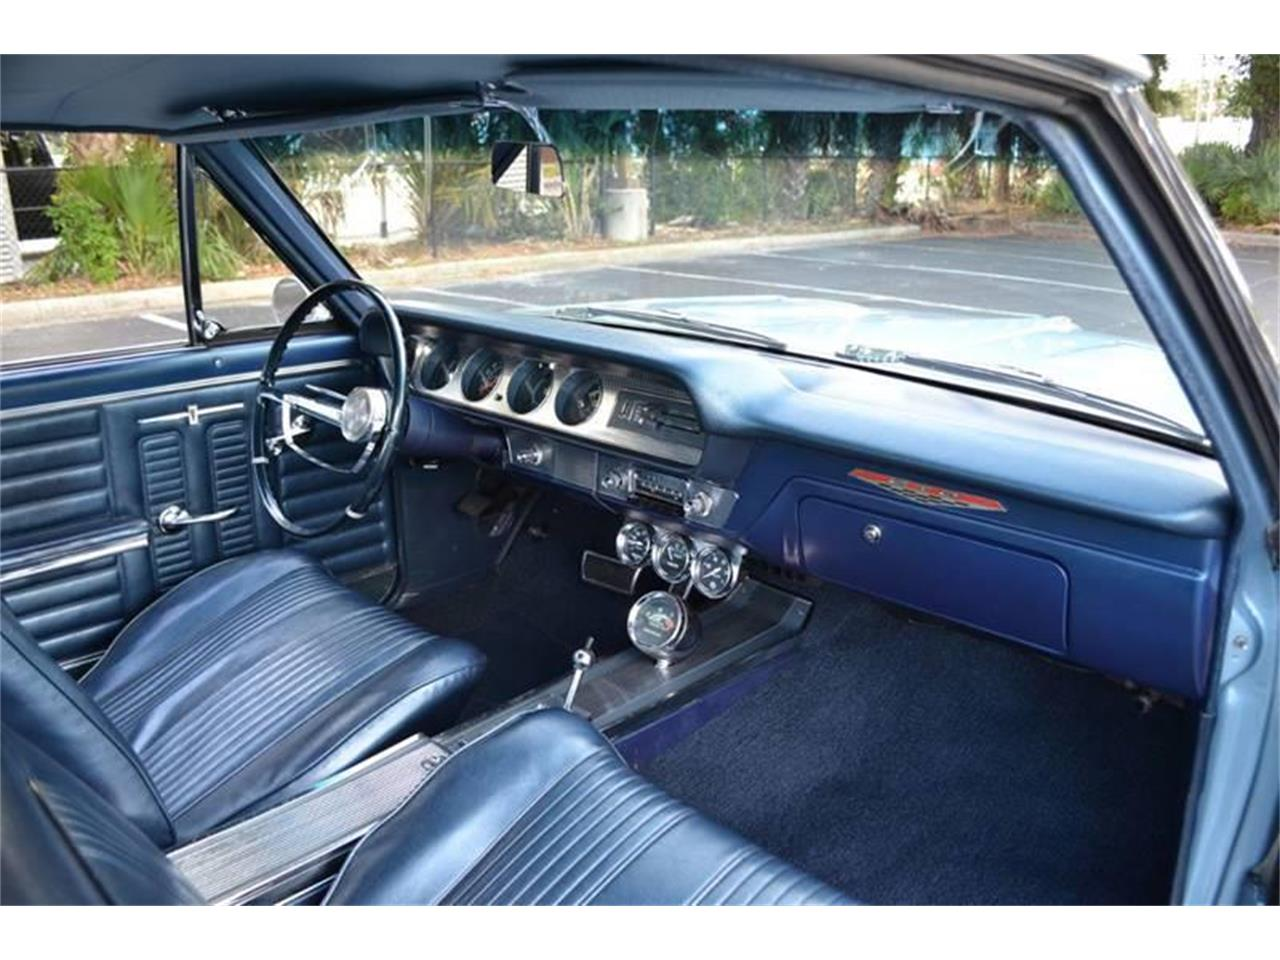 Large Picture of '64 Pontiac GTO located in Clearwater Florida - $44,900.00 Offered by PJ's Auto World - OTUJ